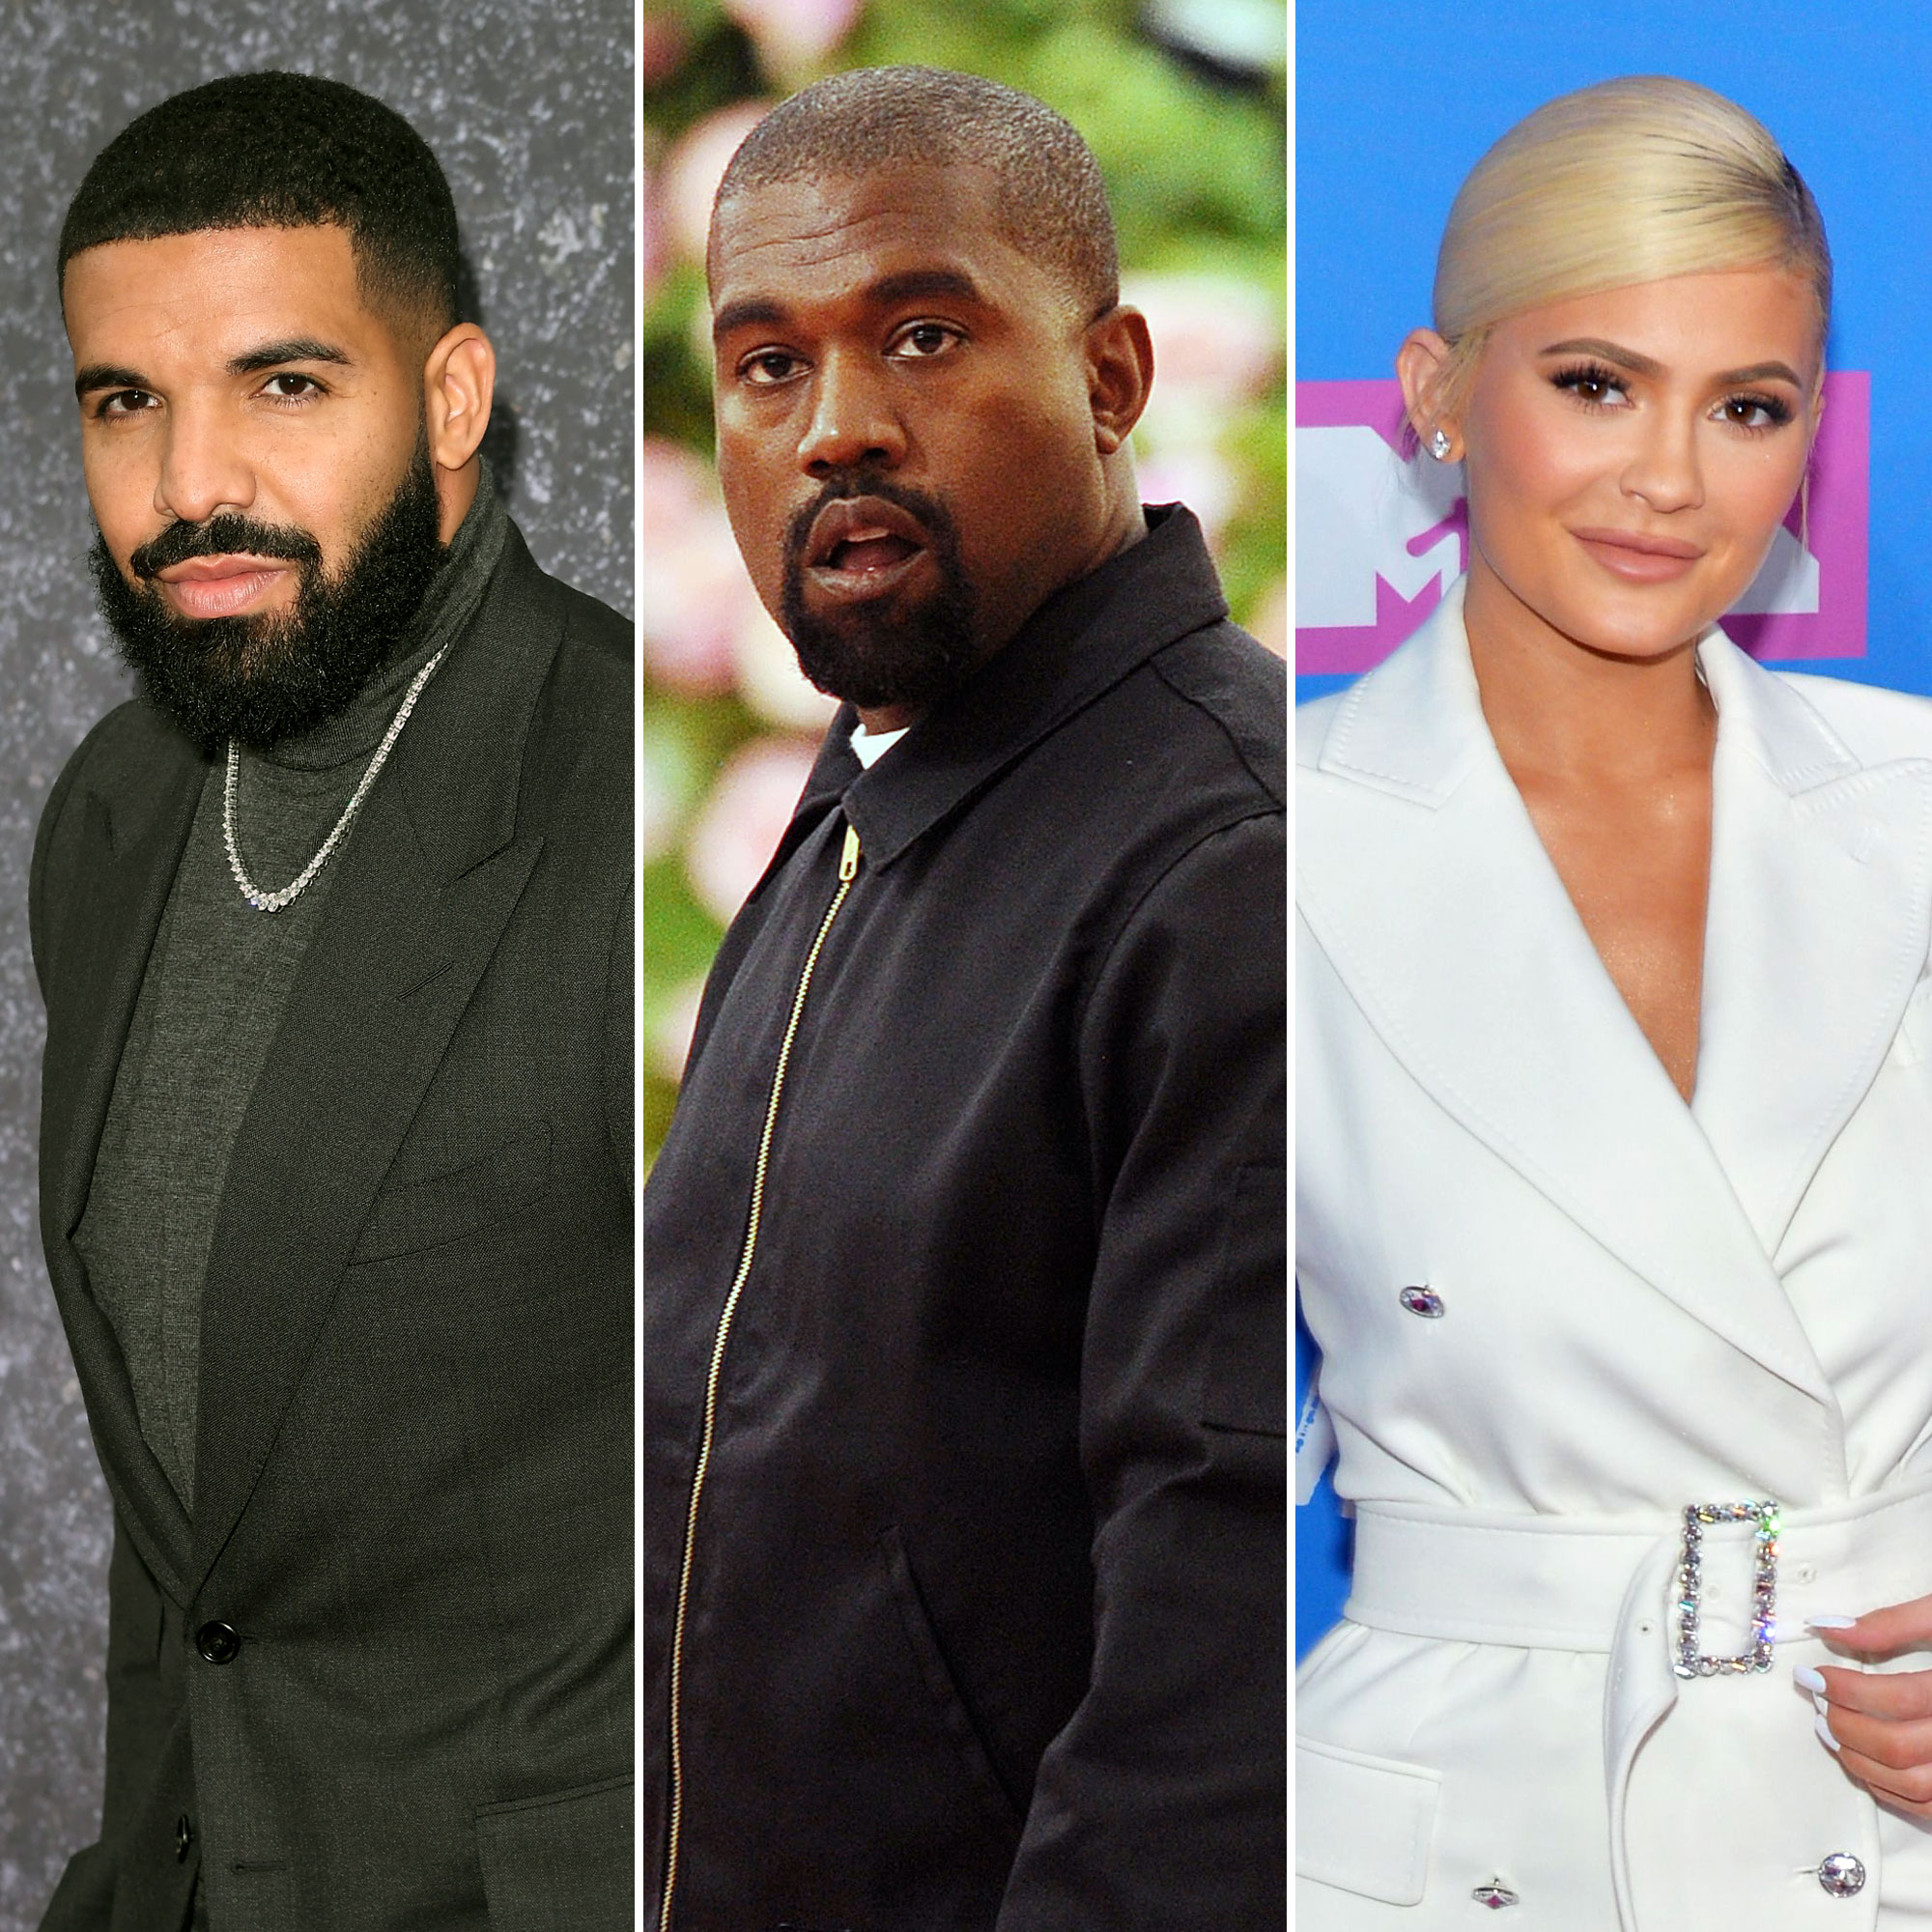 Feuds, Flirting And More: Drake's Ups And Downs With The Kardashians